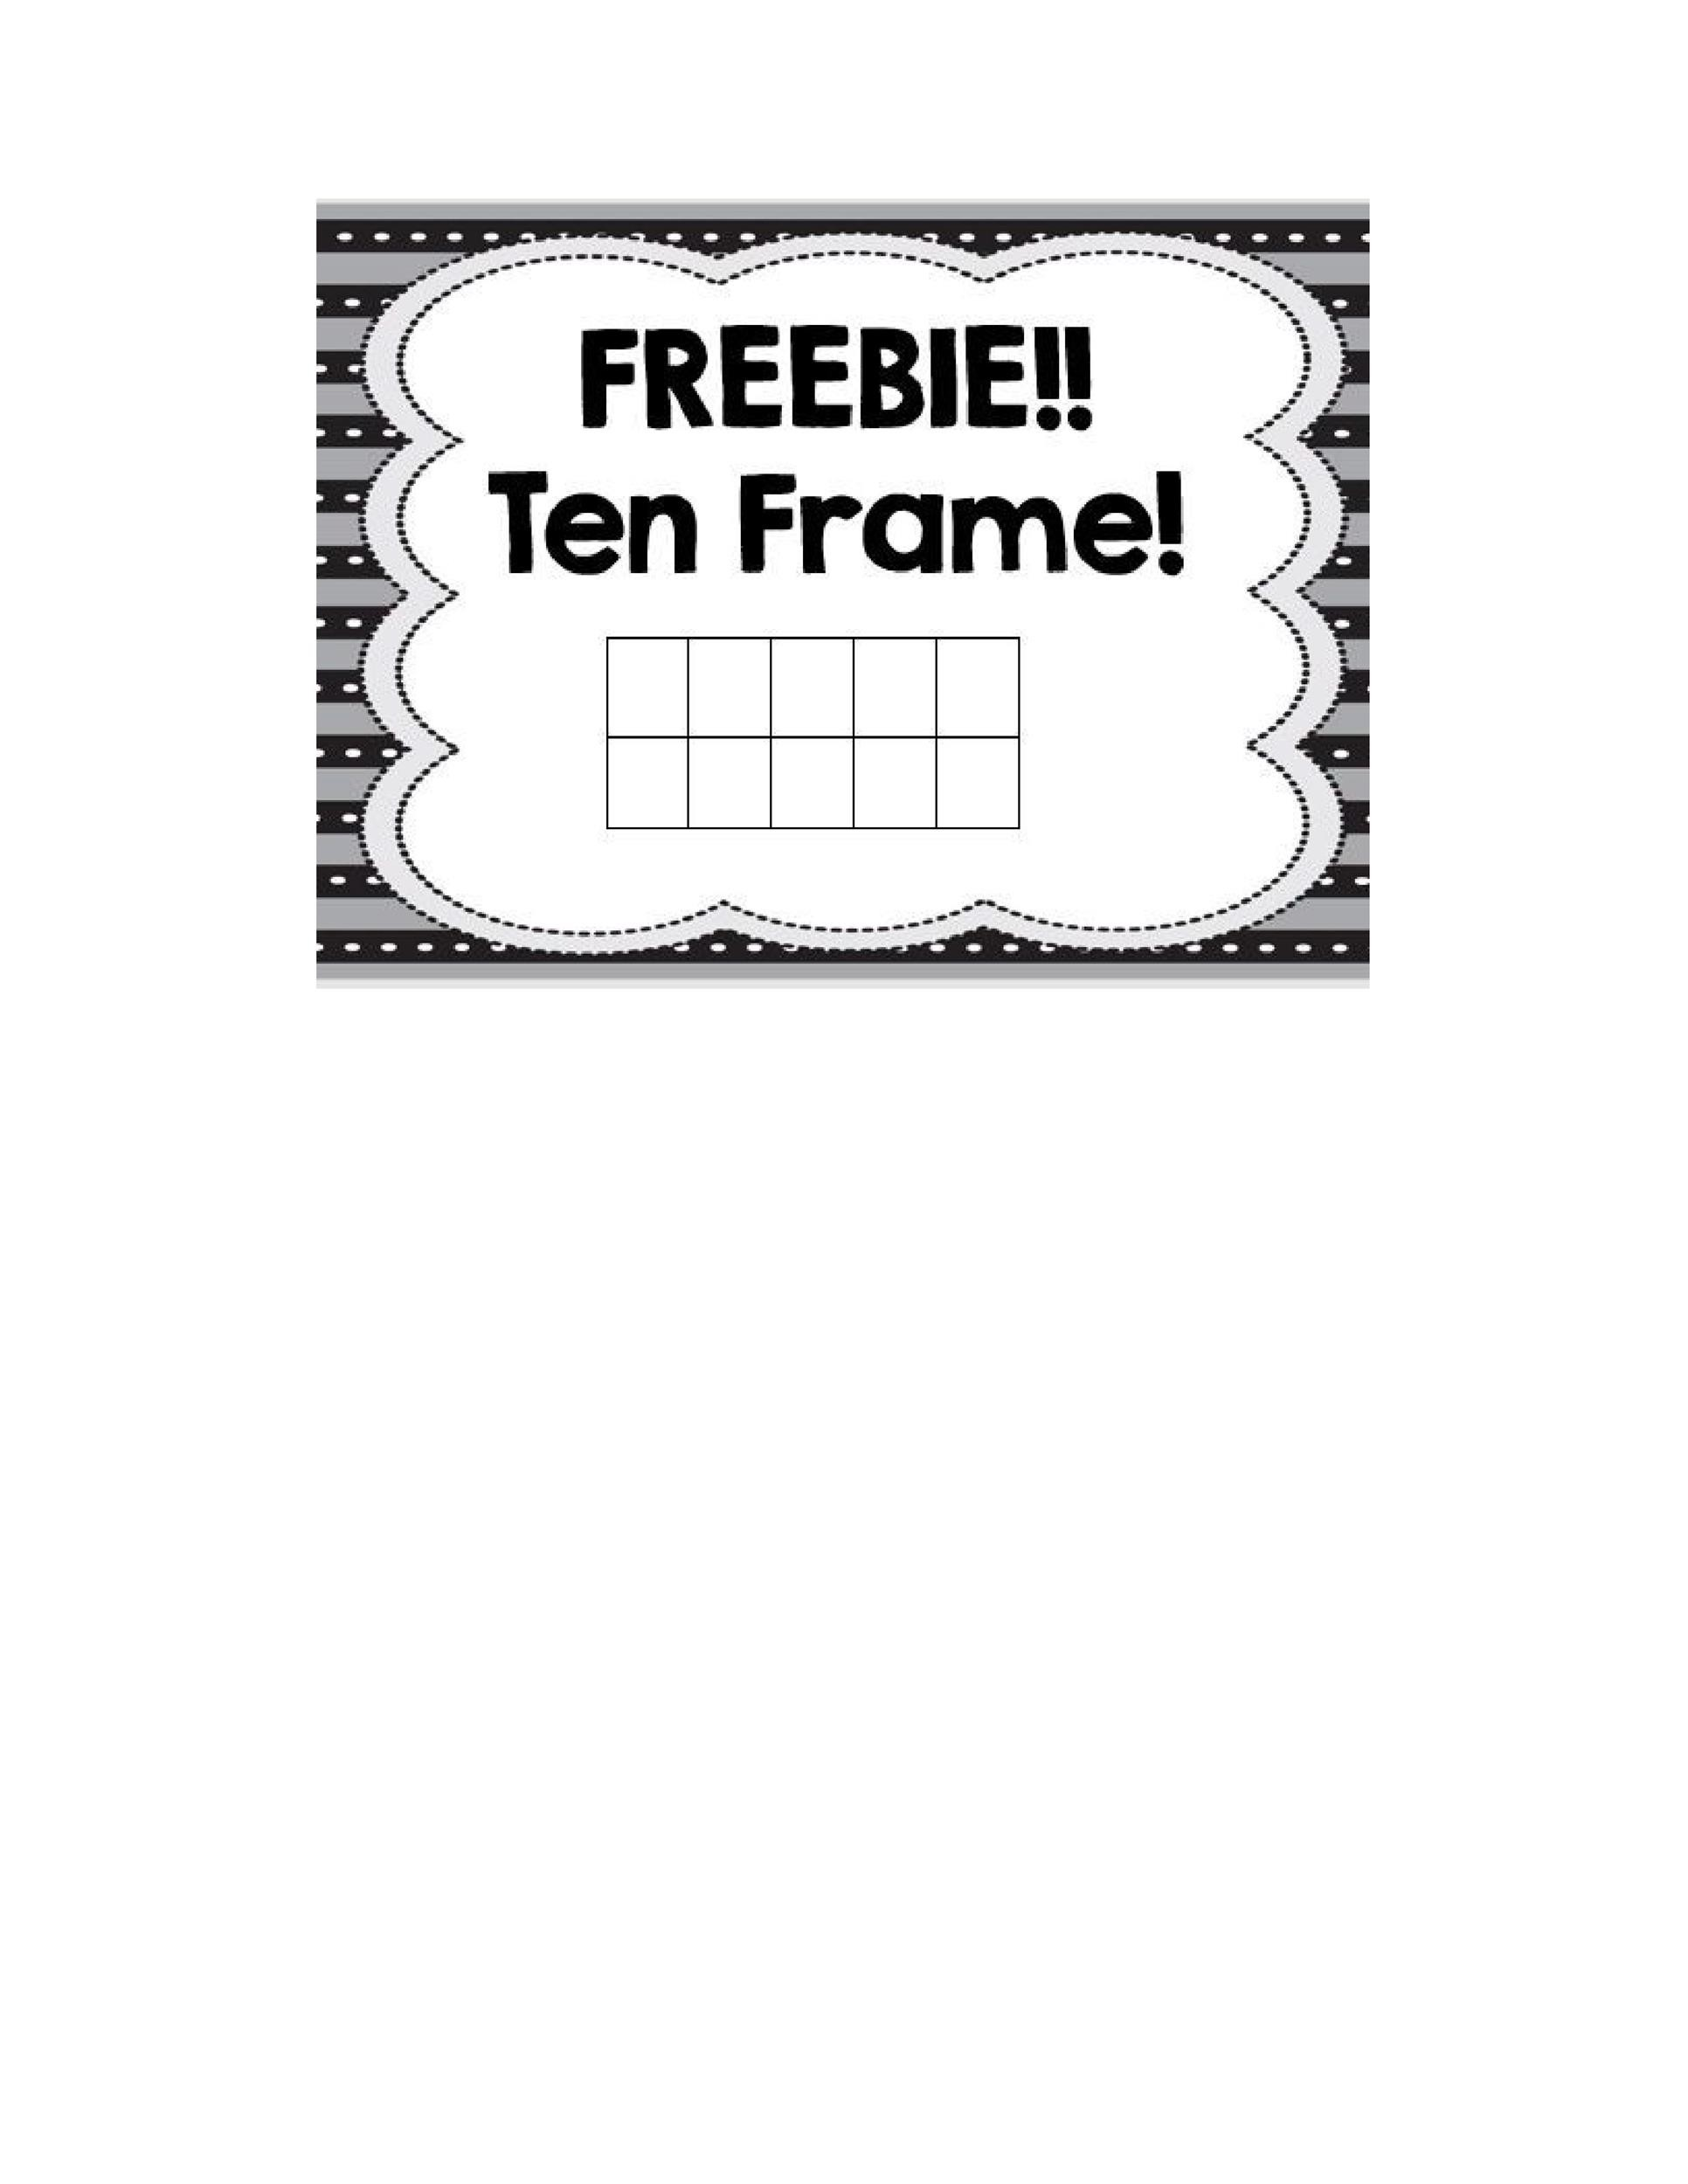 photograph relating to Ten Frames Printable identified as 36 Printable 10 Body Templates (Cost-free) ᐅ Template Lab